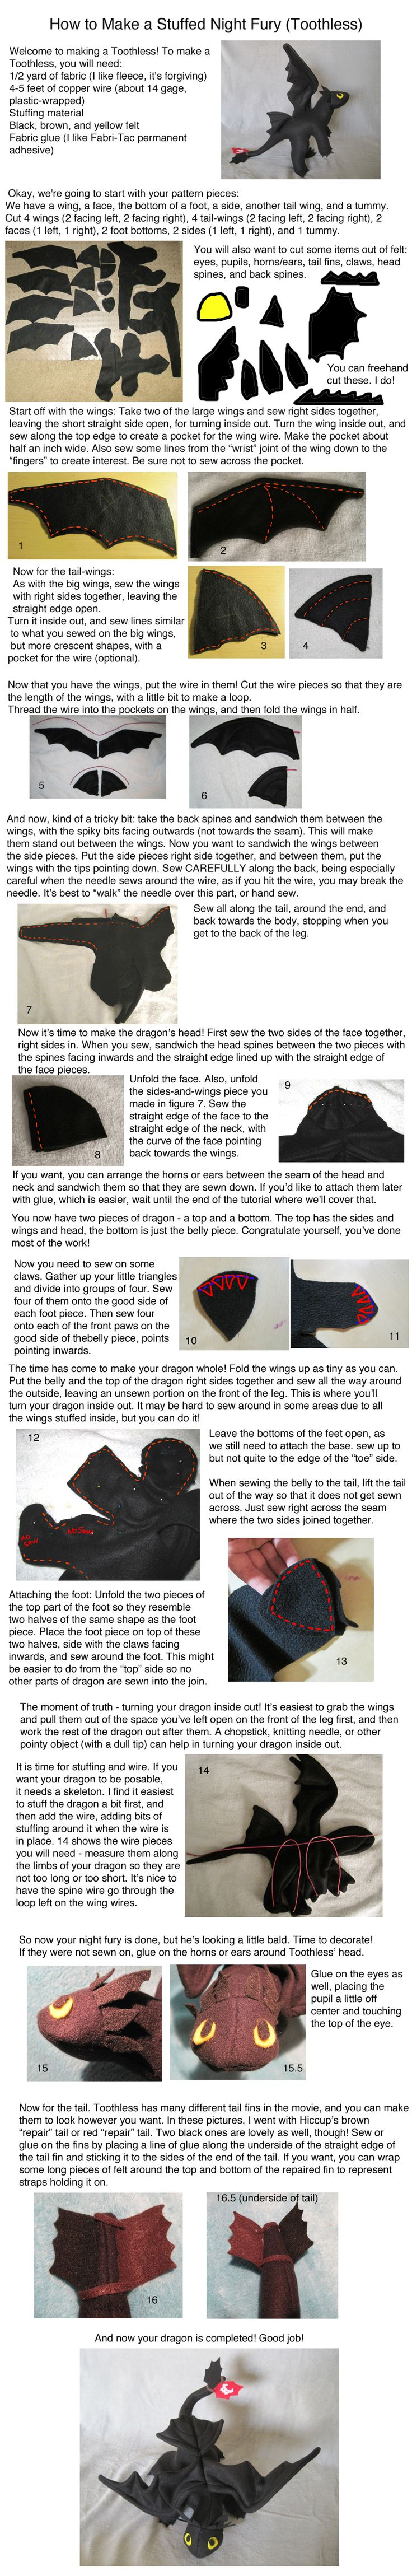 How to make a stuffed Toothless dragon from How to Train Your Dragon.